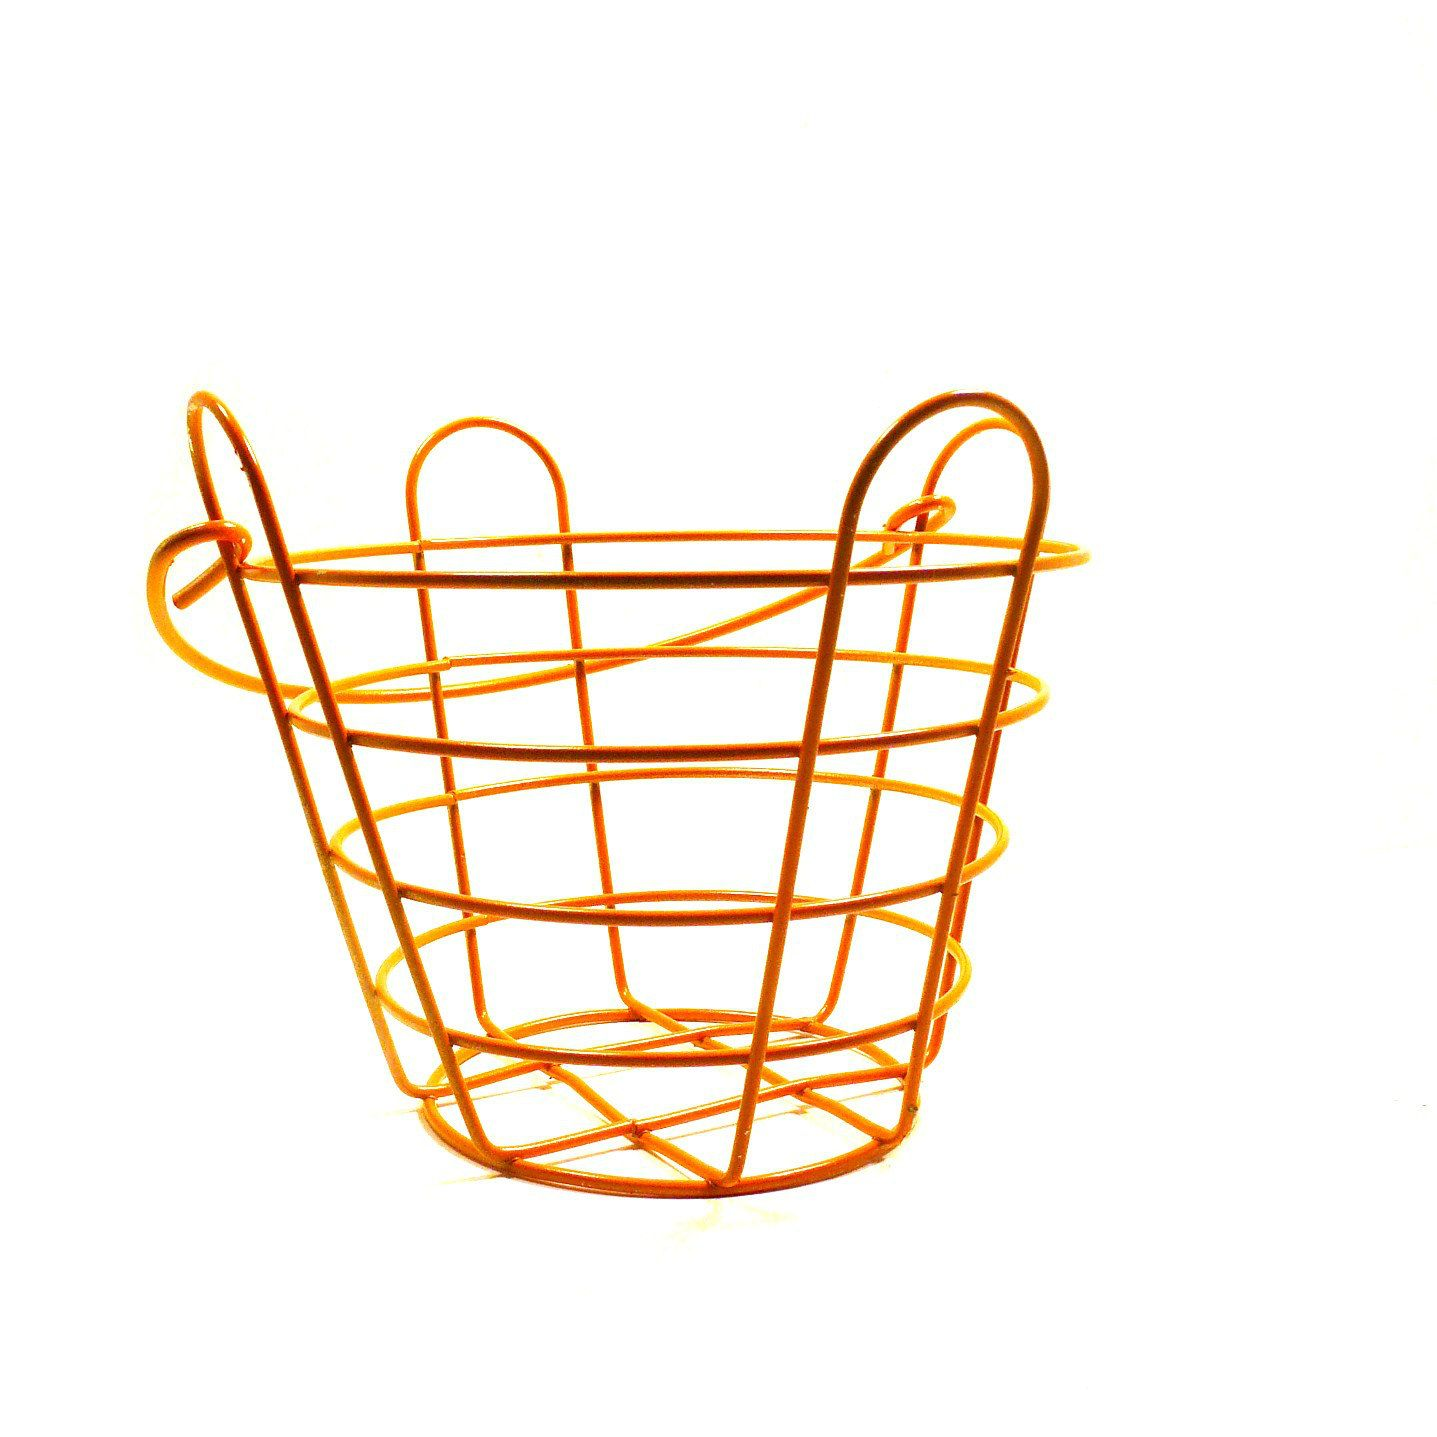 Vintage wire basket, retro decor, orange, easter, baskets, kitchen ...